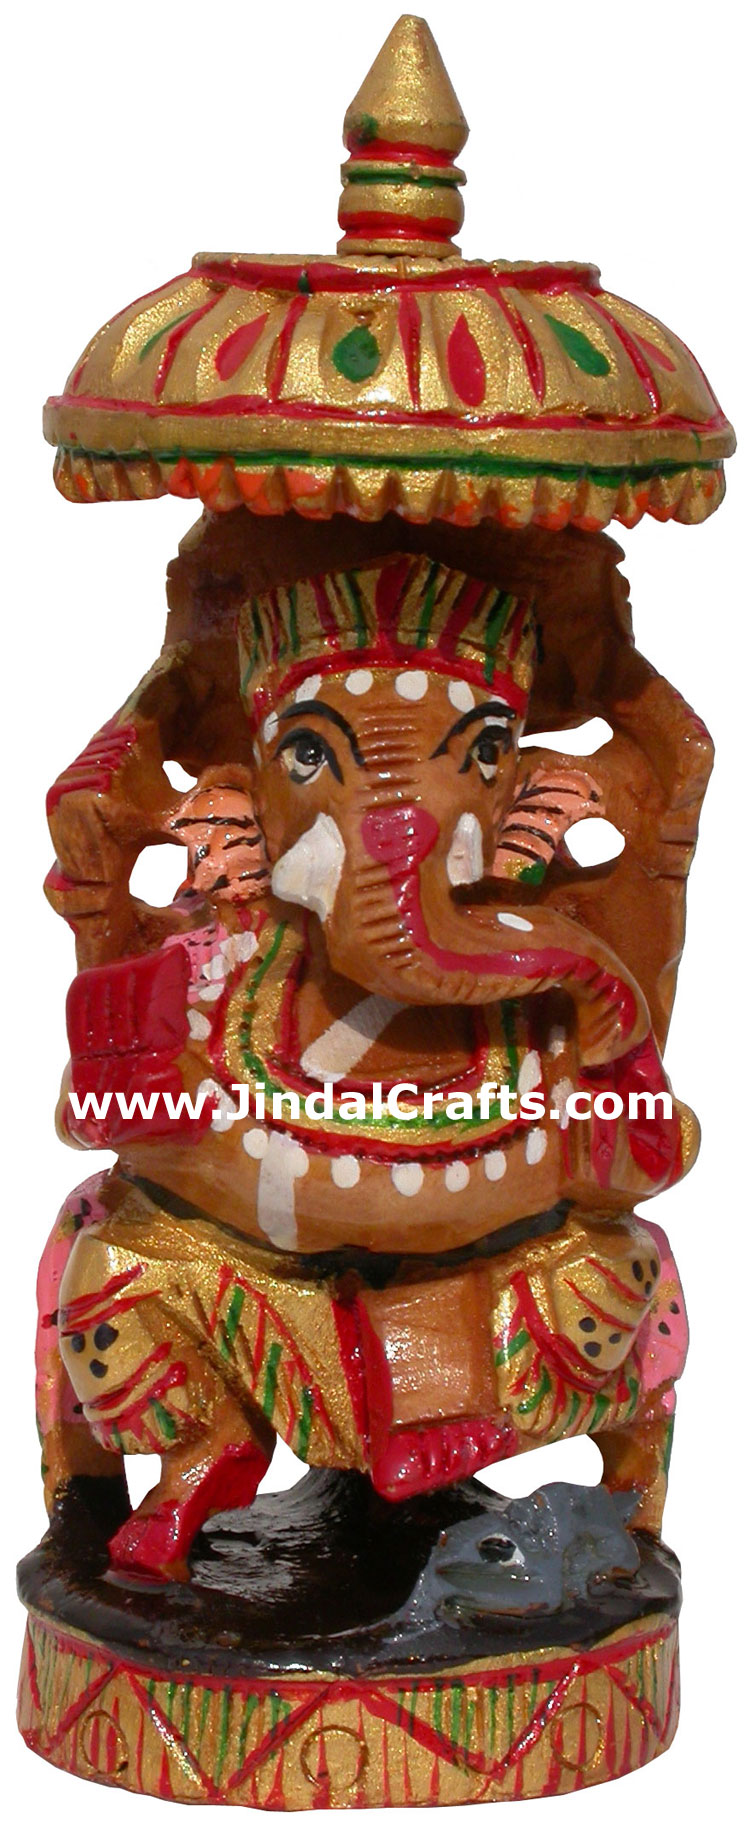 Handmade wooden carved painted Lord Ganesha India Arts